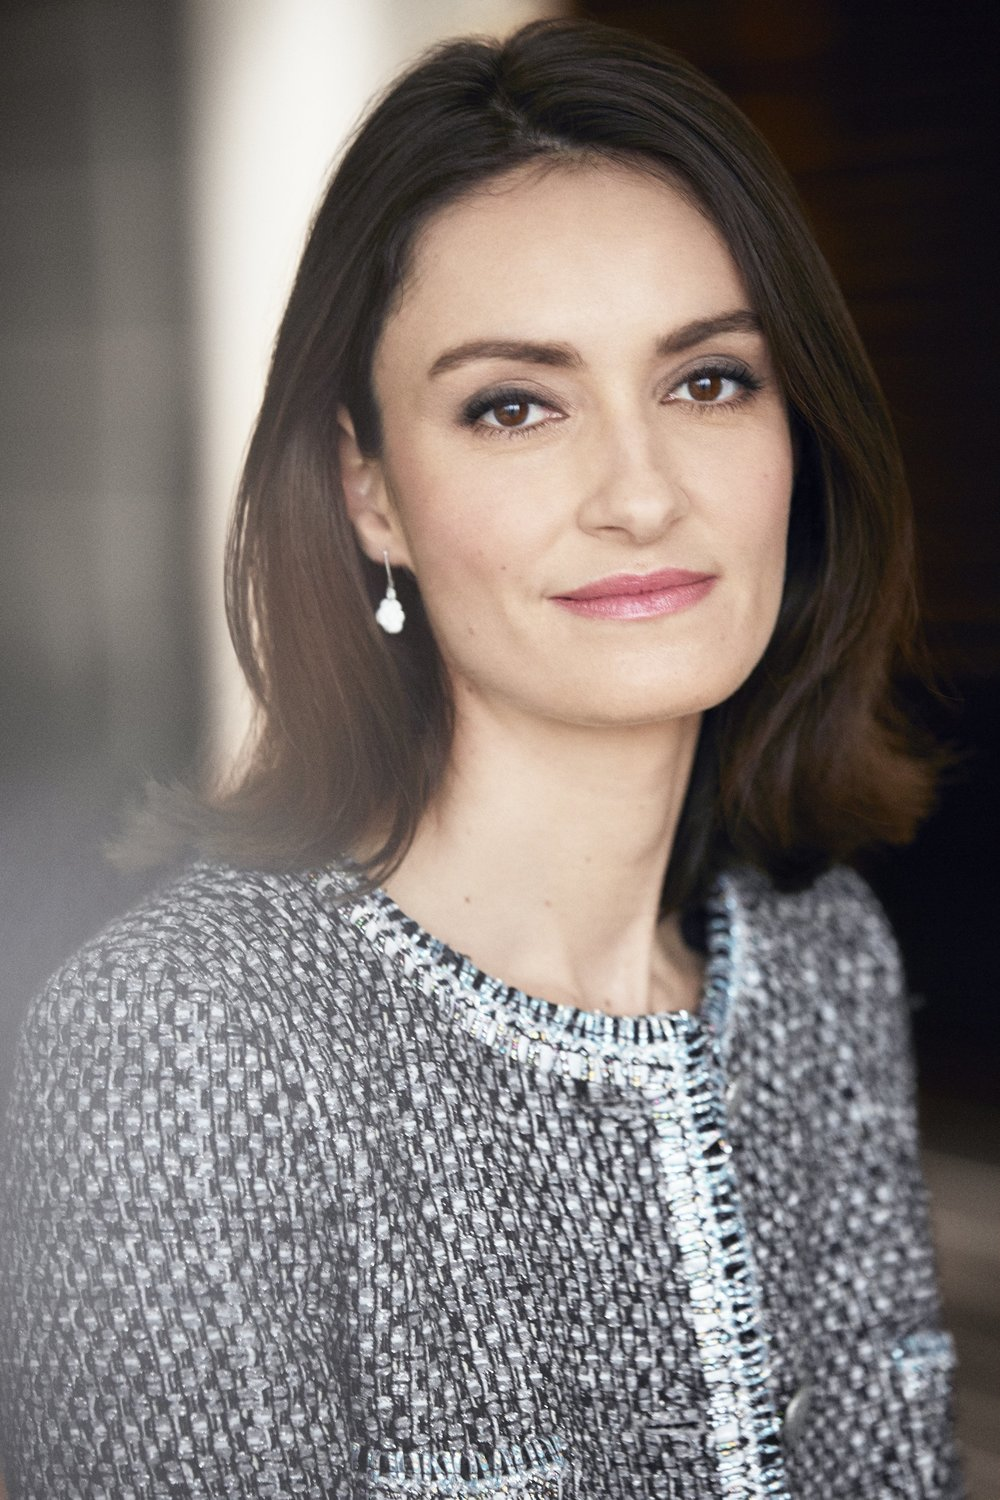 ARMELLE SOURAUD, INTERNATIONAL SCIENTIFIC COMMUNICATIONS DIRECTOR OF CHANEL.